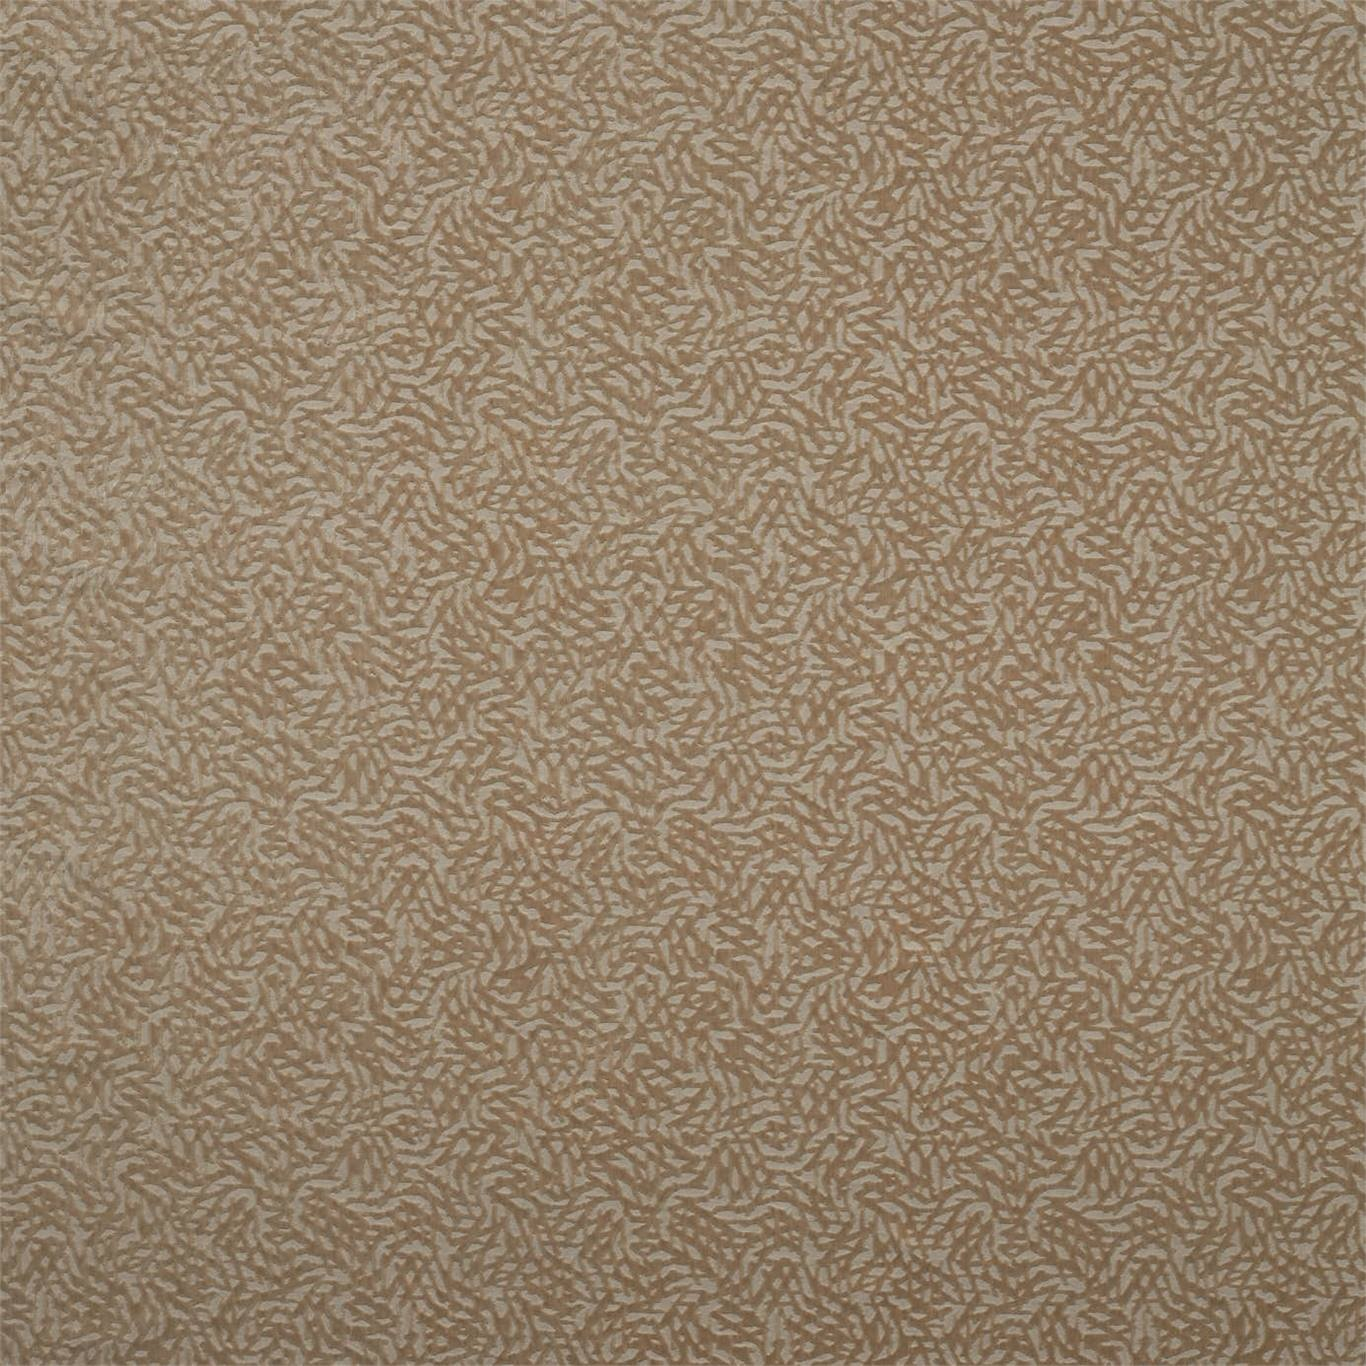 Image of Harlequin Dentella Brass Curtain Fabric 132680